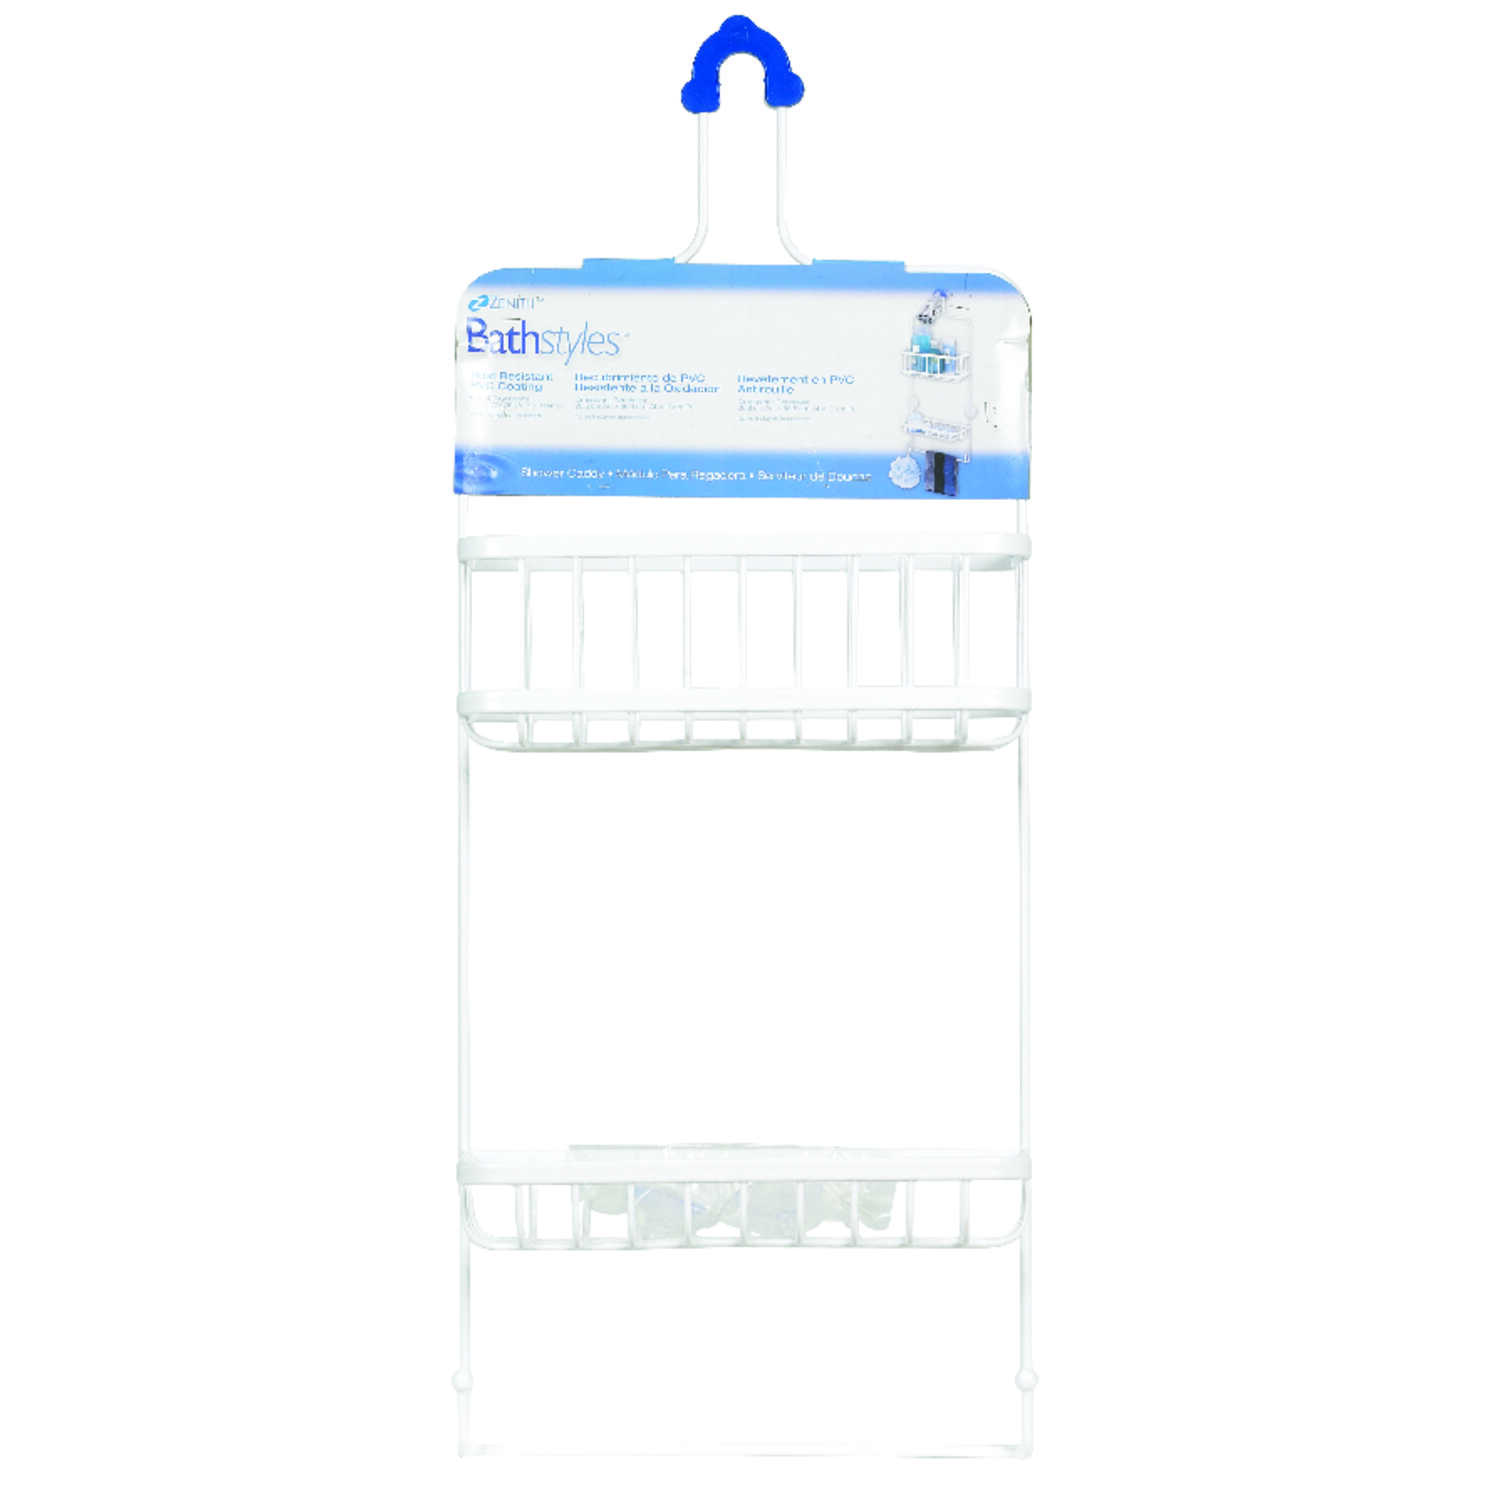 Zenith  Shower Caddy  4.1 in. L x 10.4 in. W x 26.1 in. H Chrome  White  Steel